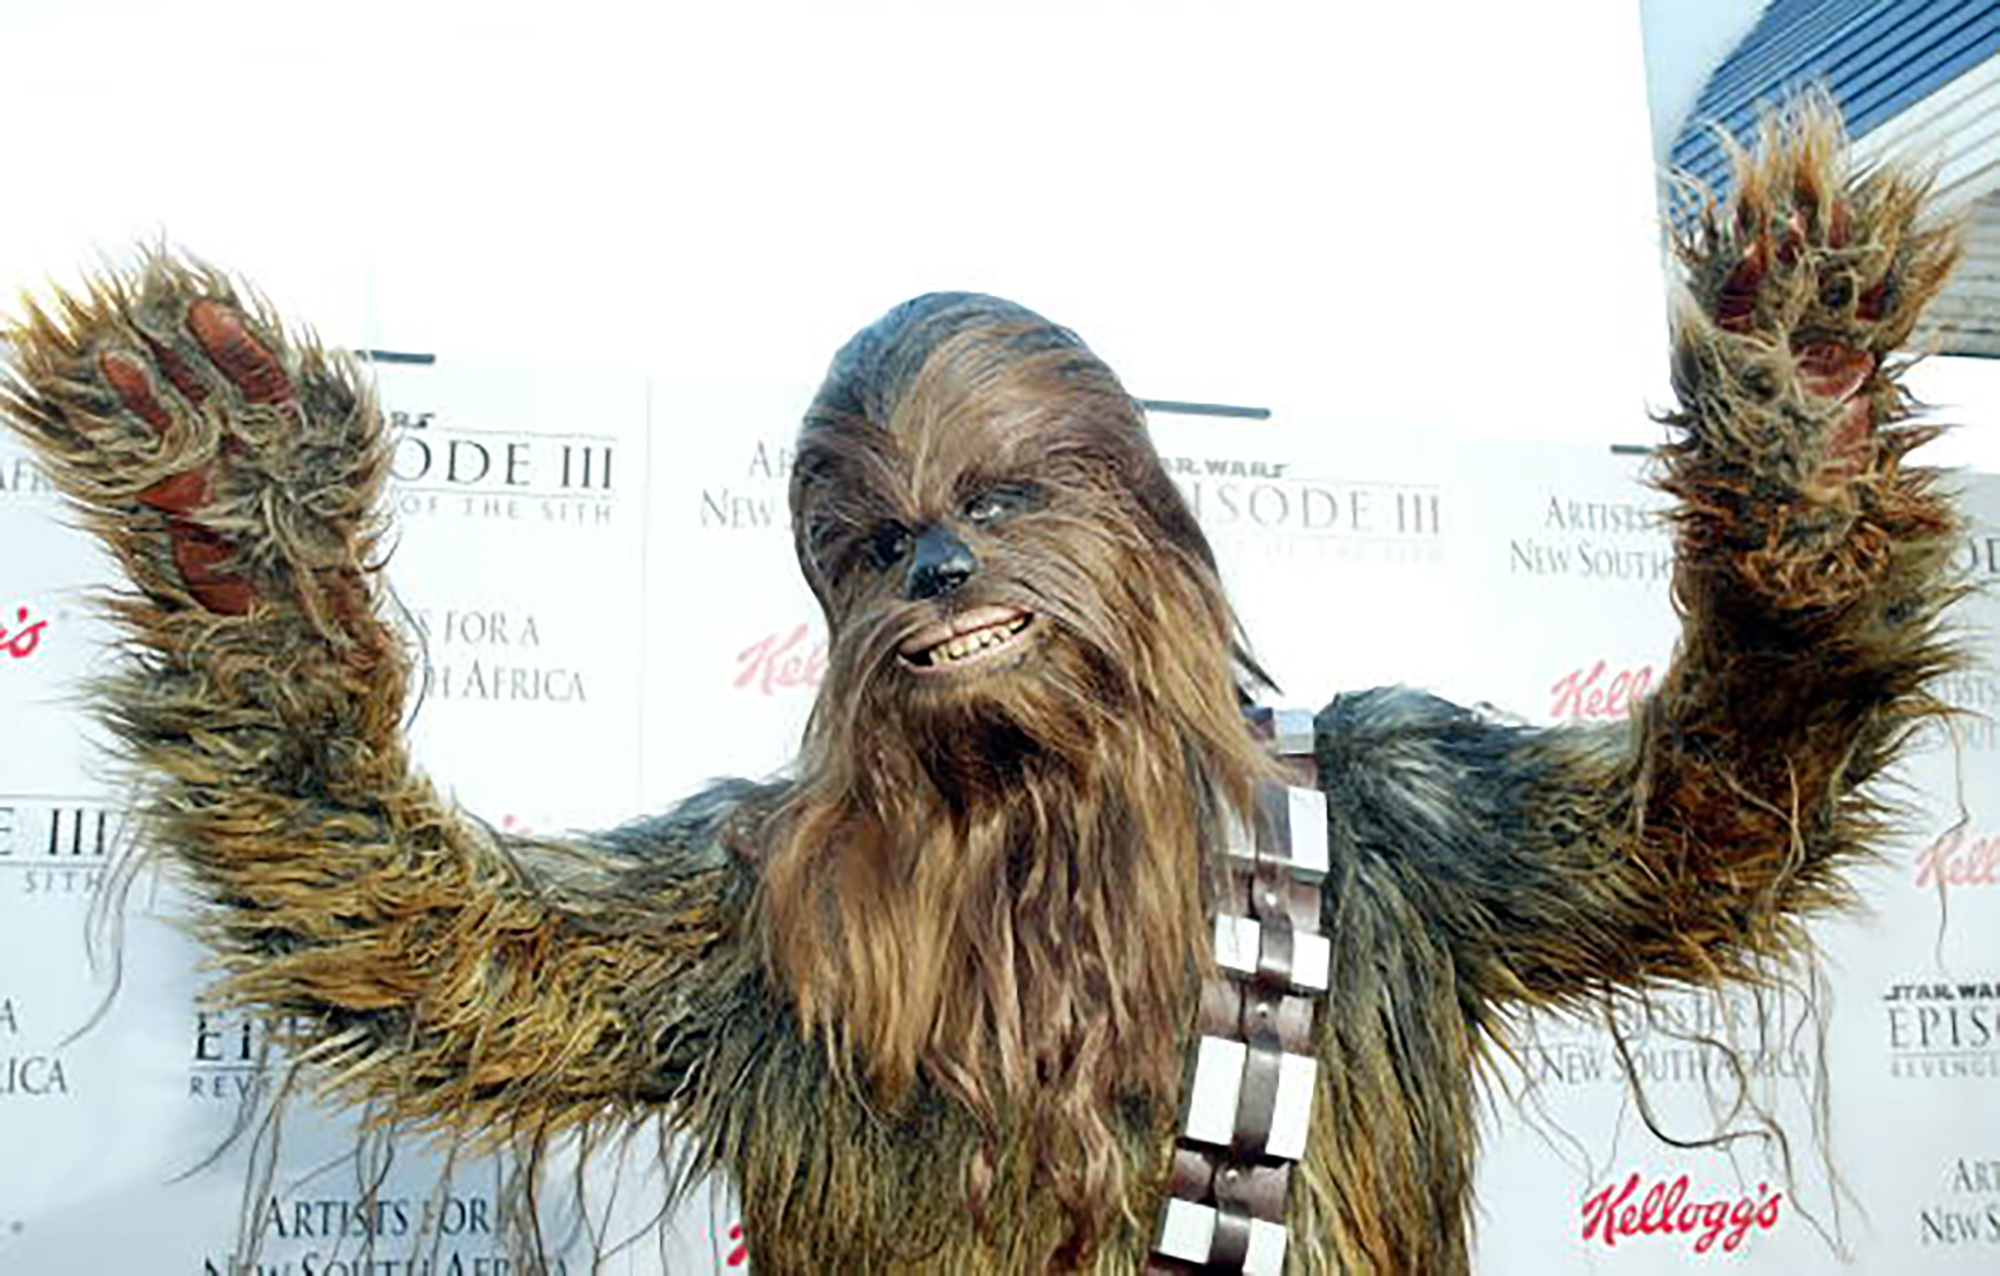 Chewbacca arrives at the  Star Wars Episode III - Revenge Of The Sith  Los Angeles Premiere at the Mann Village Theatre on May 12, 2005 in Westwood, California. (Photo by Frederick M. Brown/Getty Images)